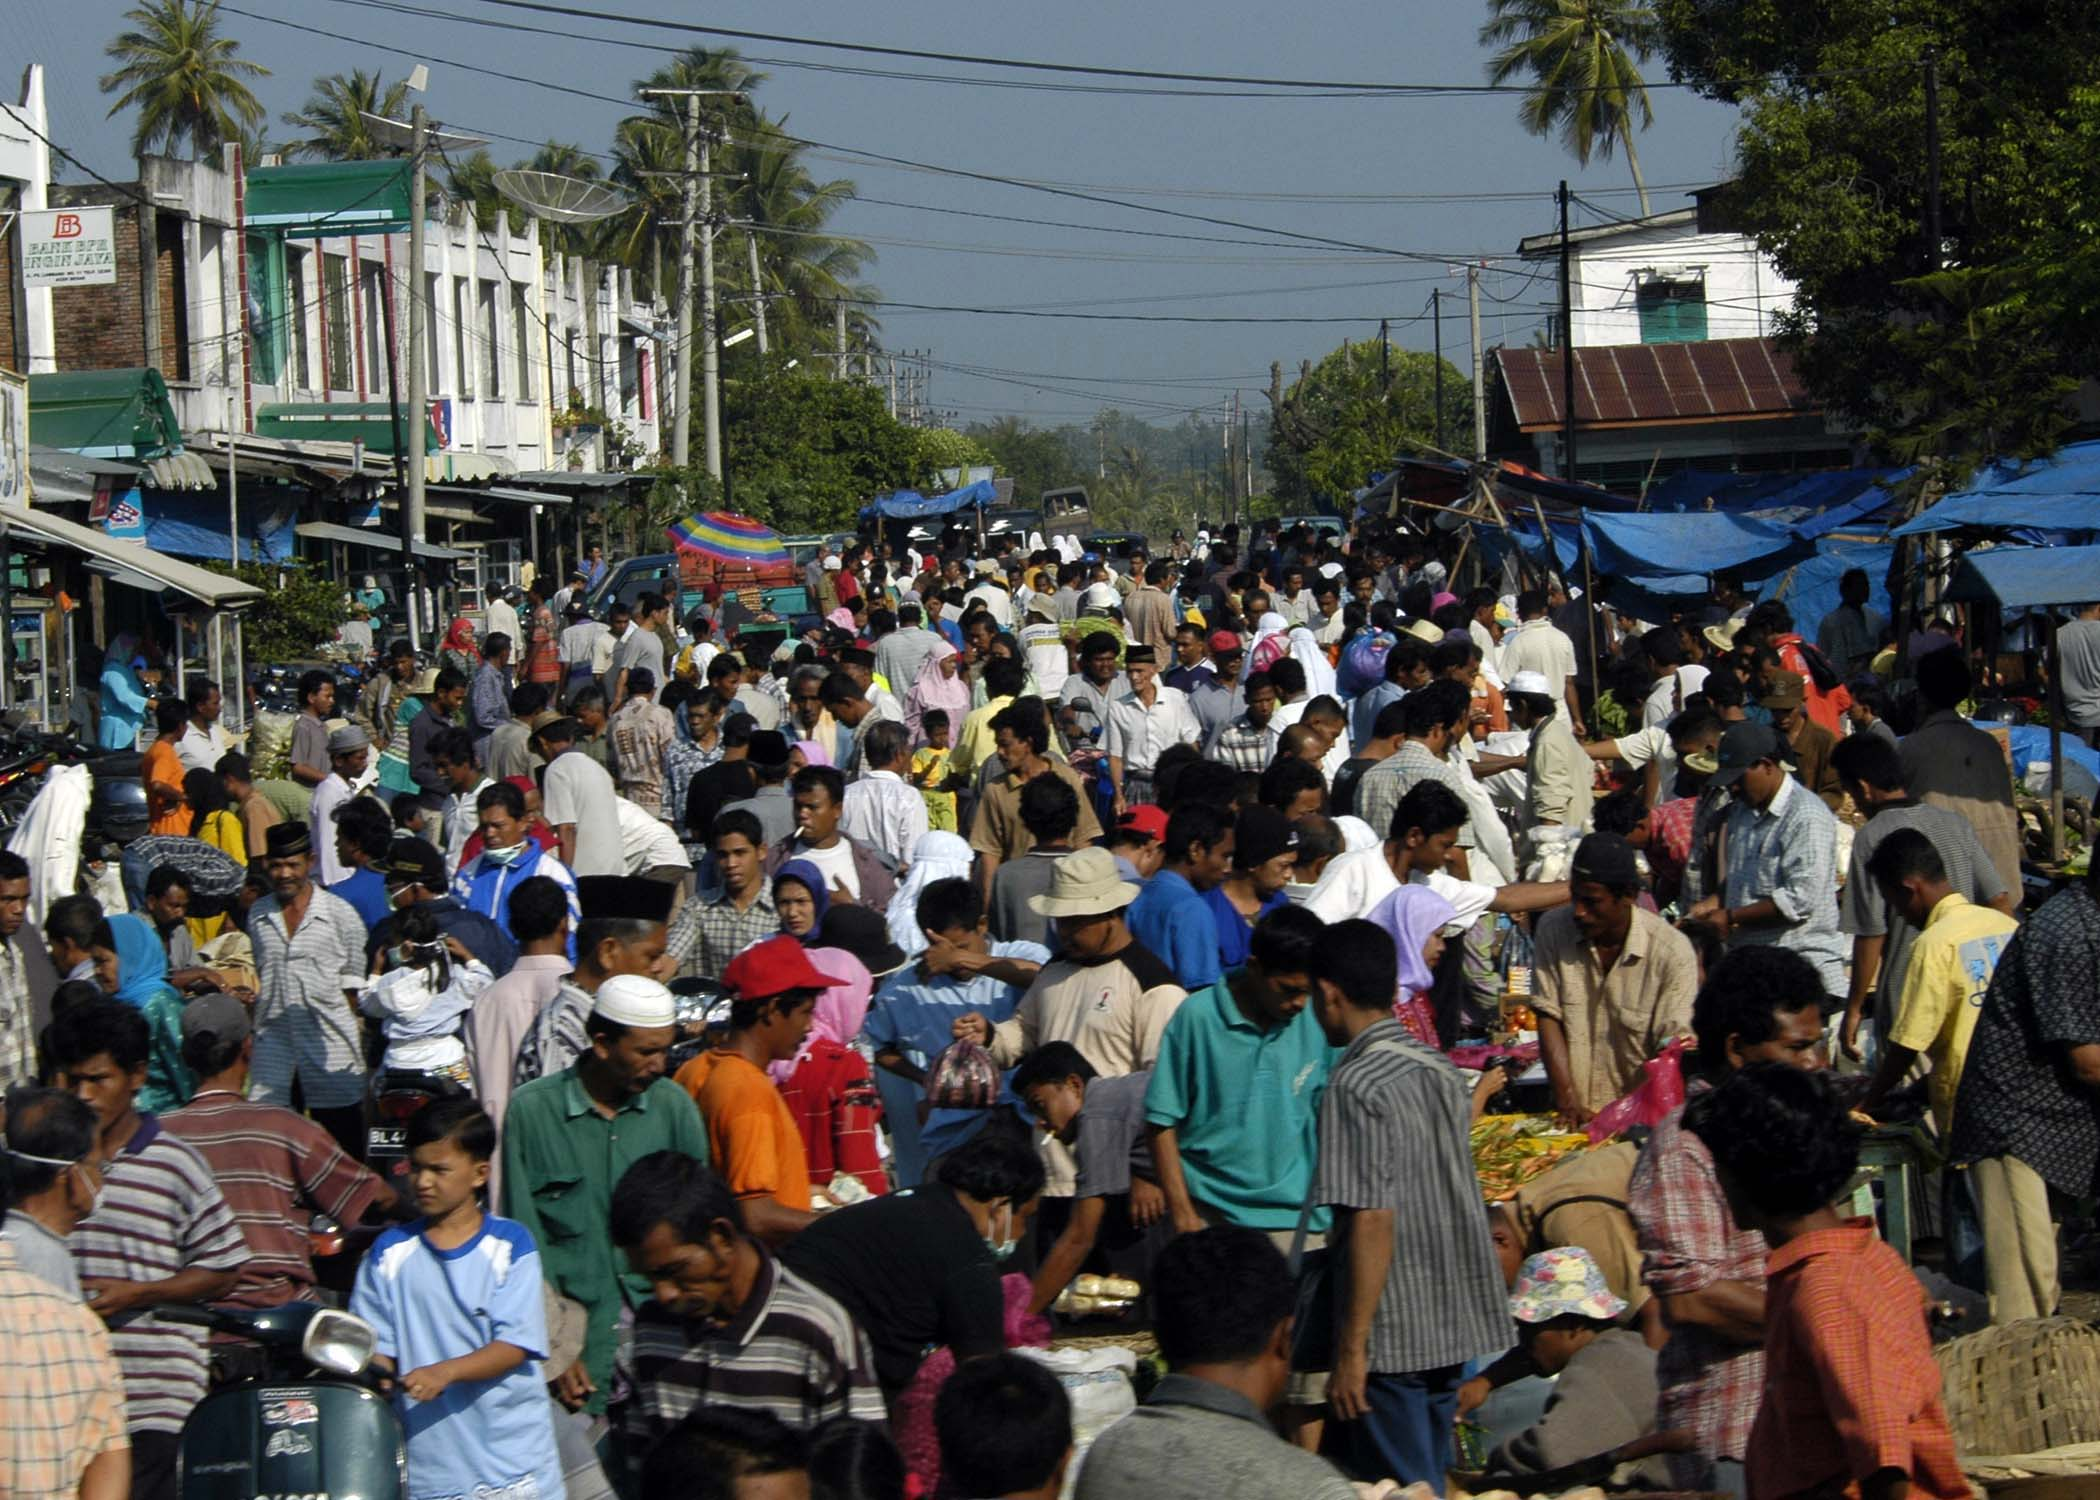 A BUSY MARKET